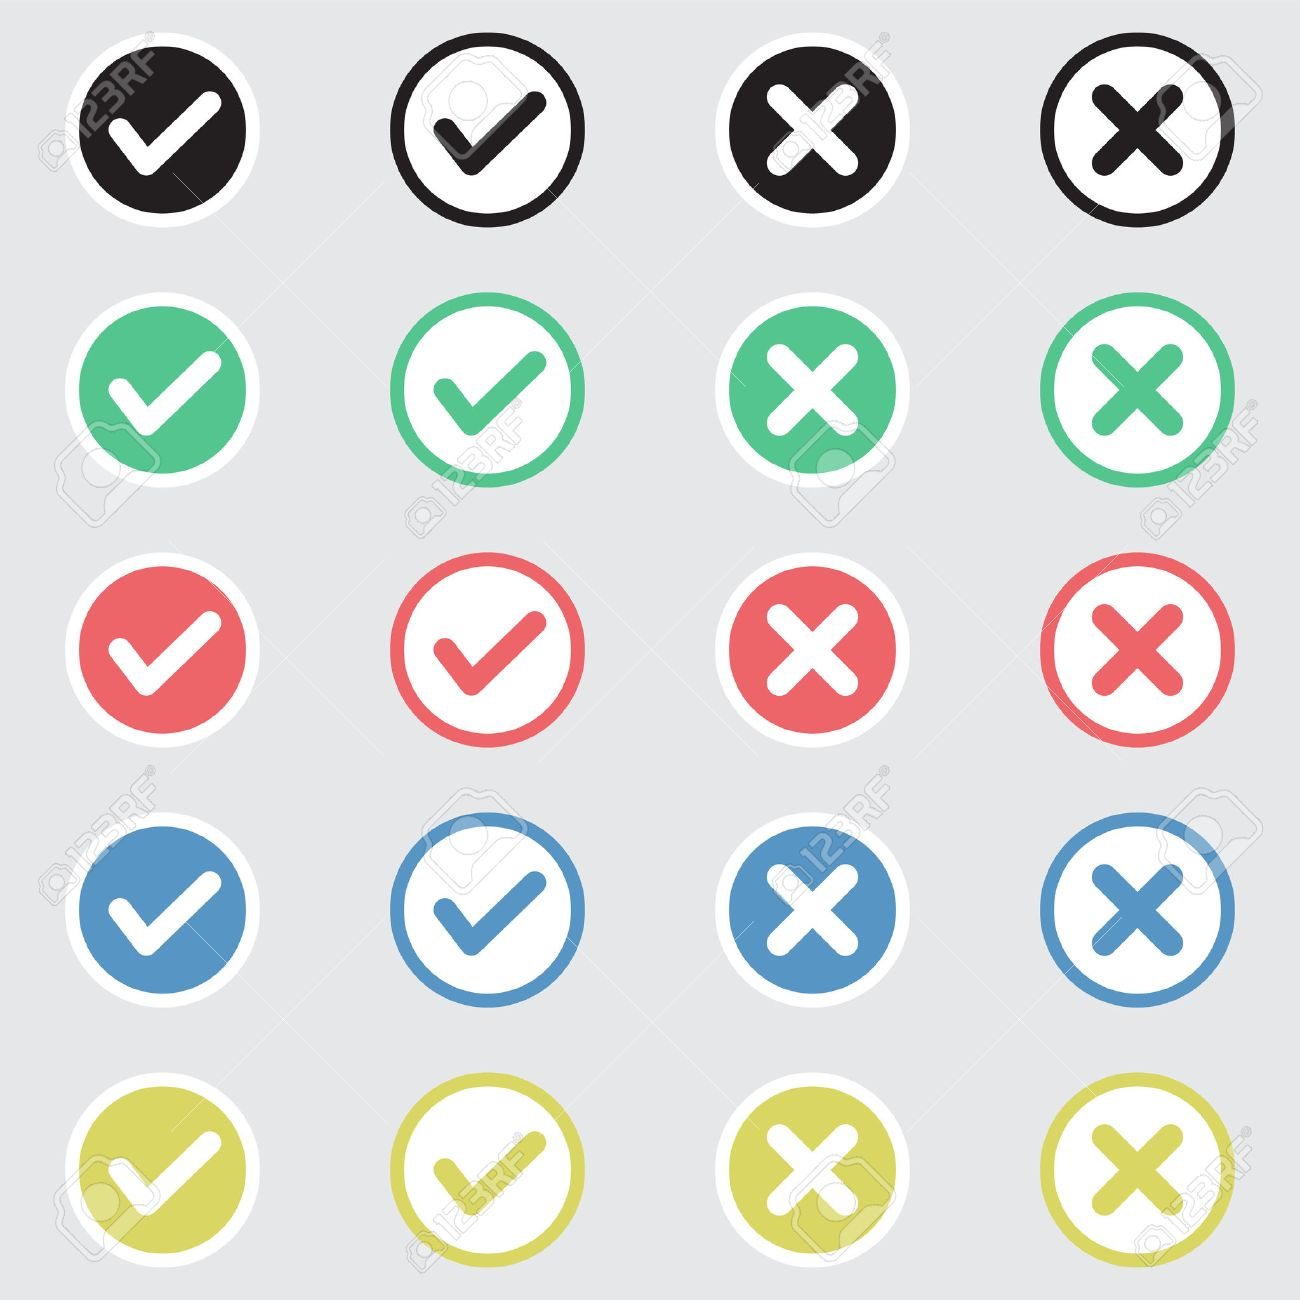 Vector Set of Flat Design Check Marks Icons. Different Variations of Ticks and Crosses Represents Confirmation, Right and Wrong Choices, Task Completion, Voting. - 40707026